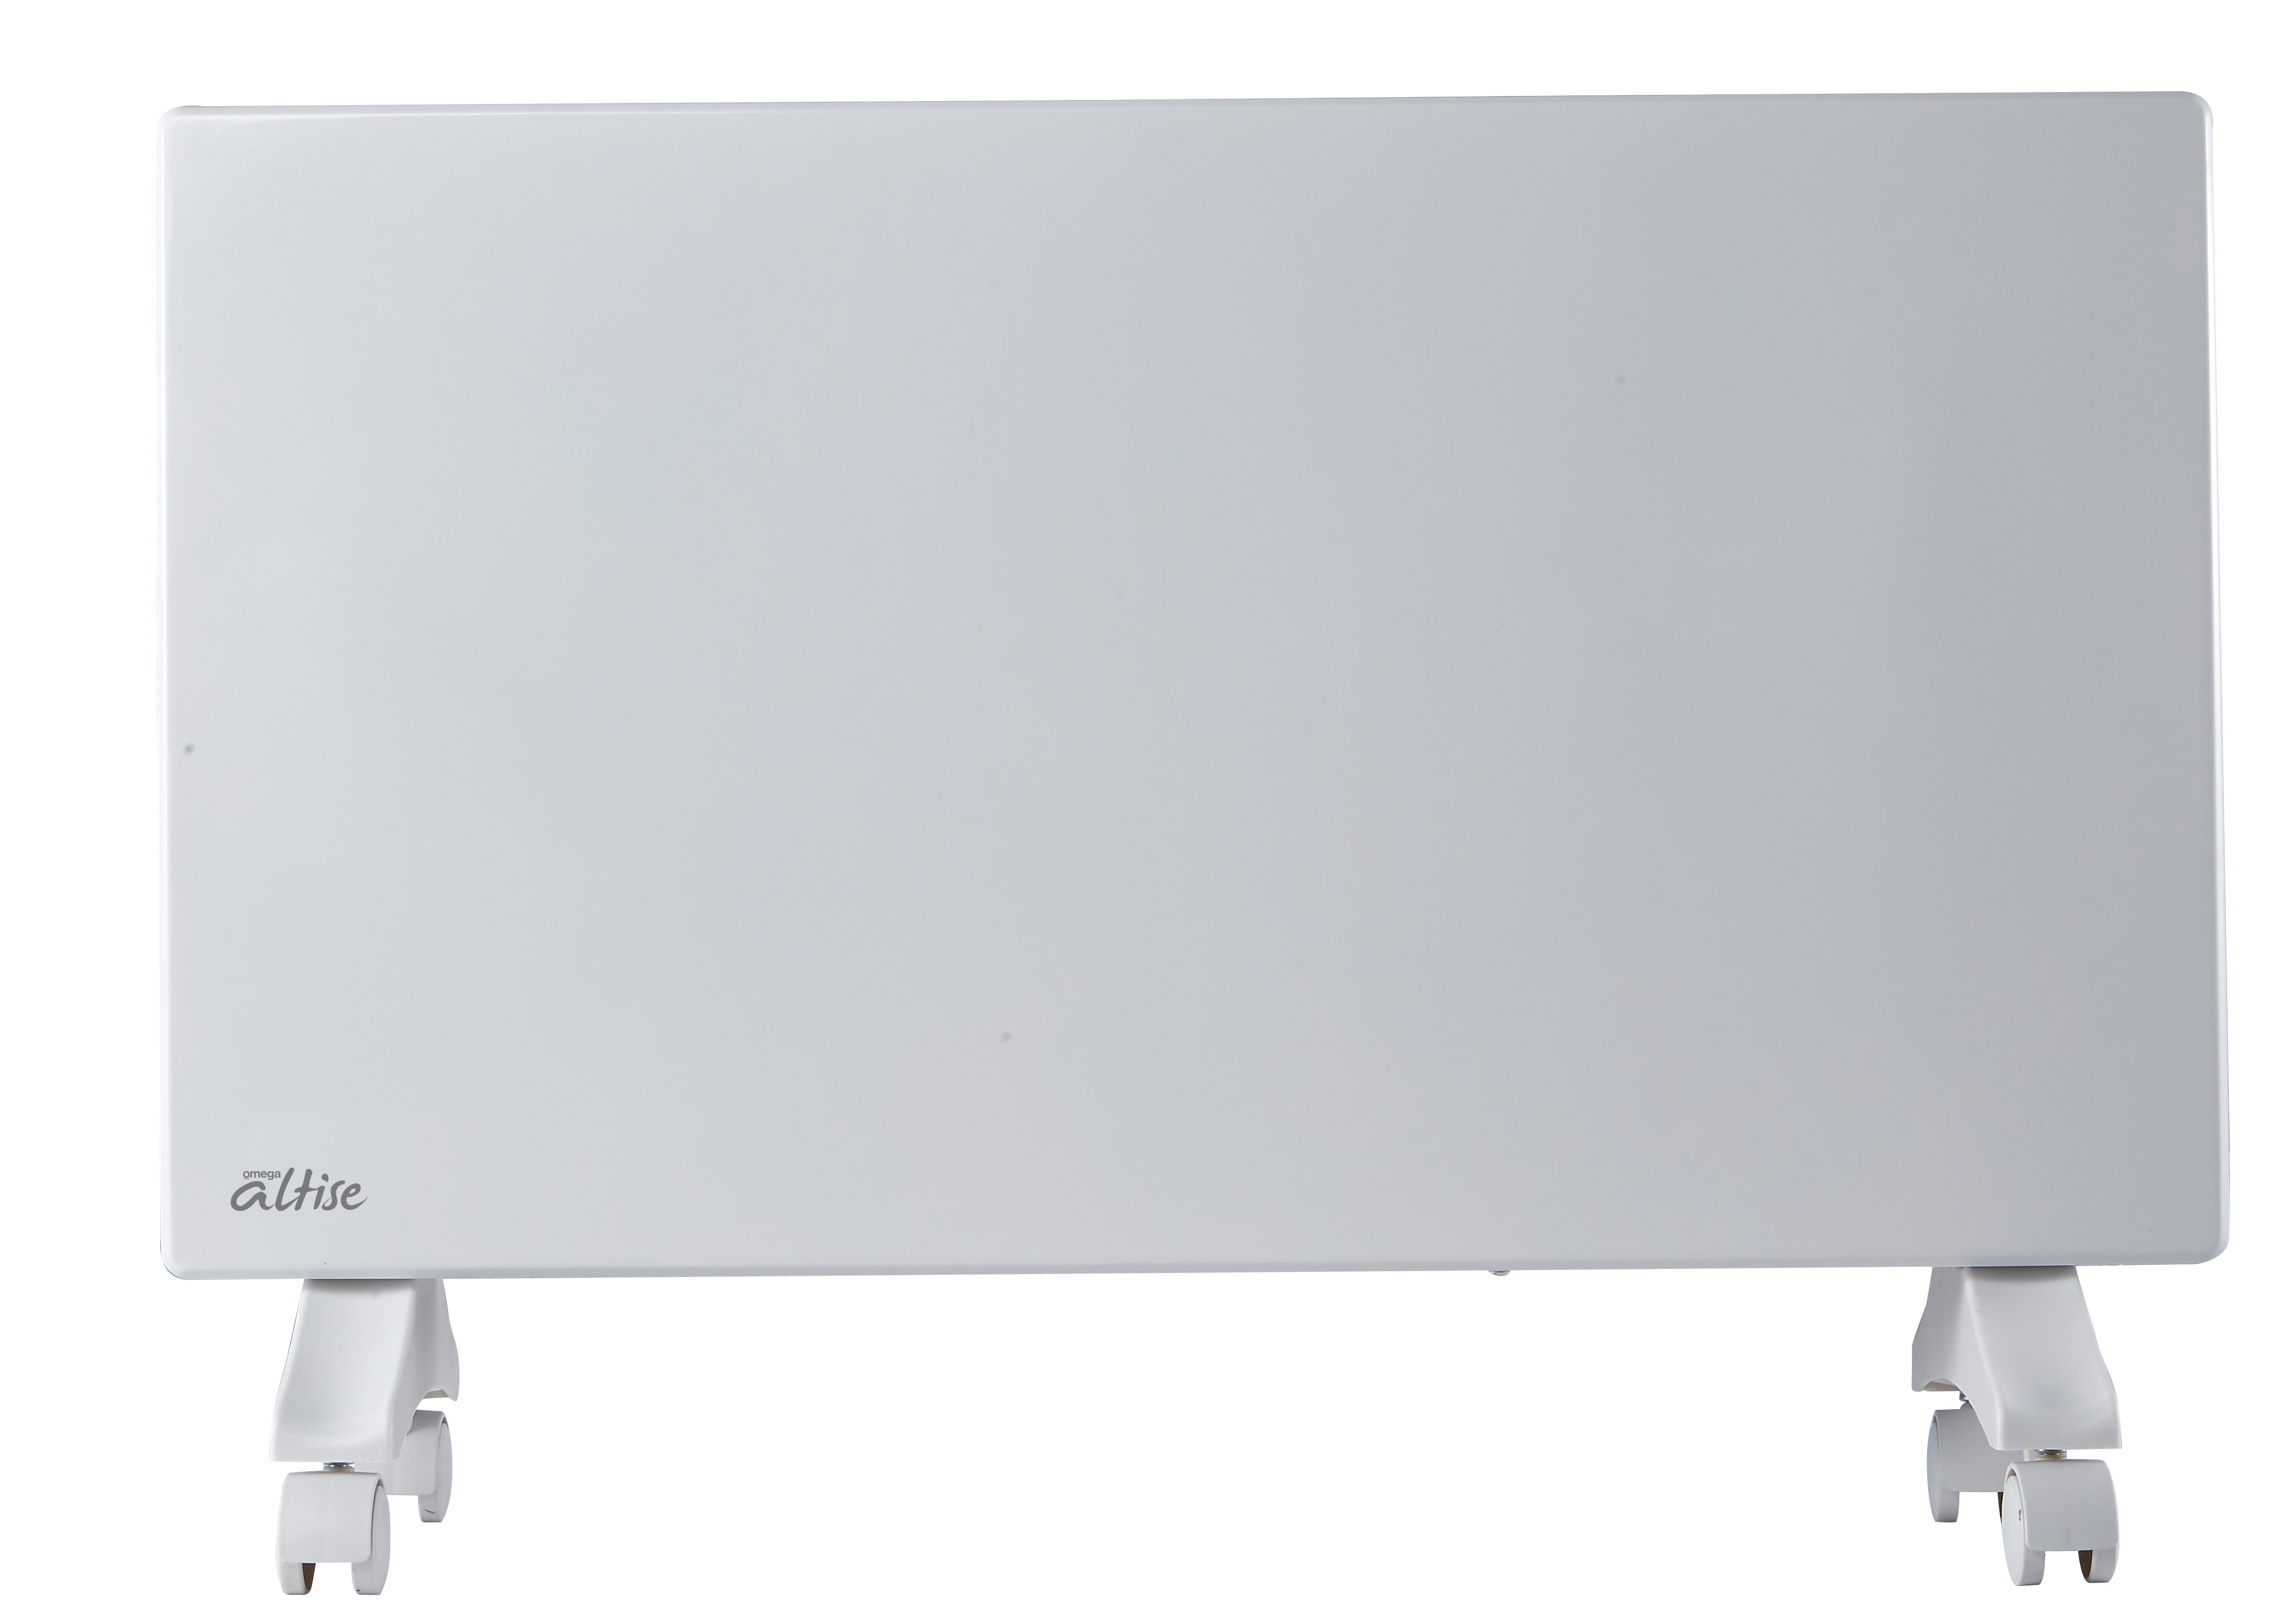 Omega Altise Product Panel Convection Heater - White1800W(OAPE1800W)